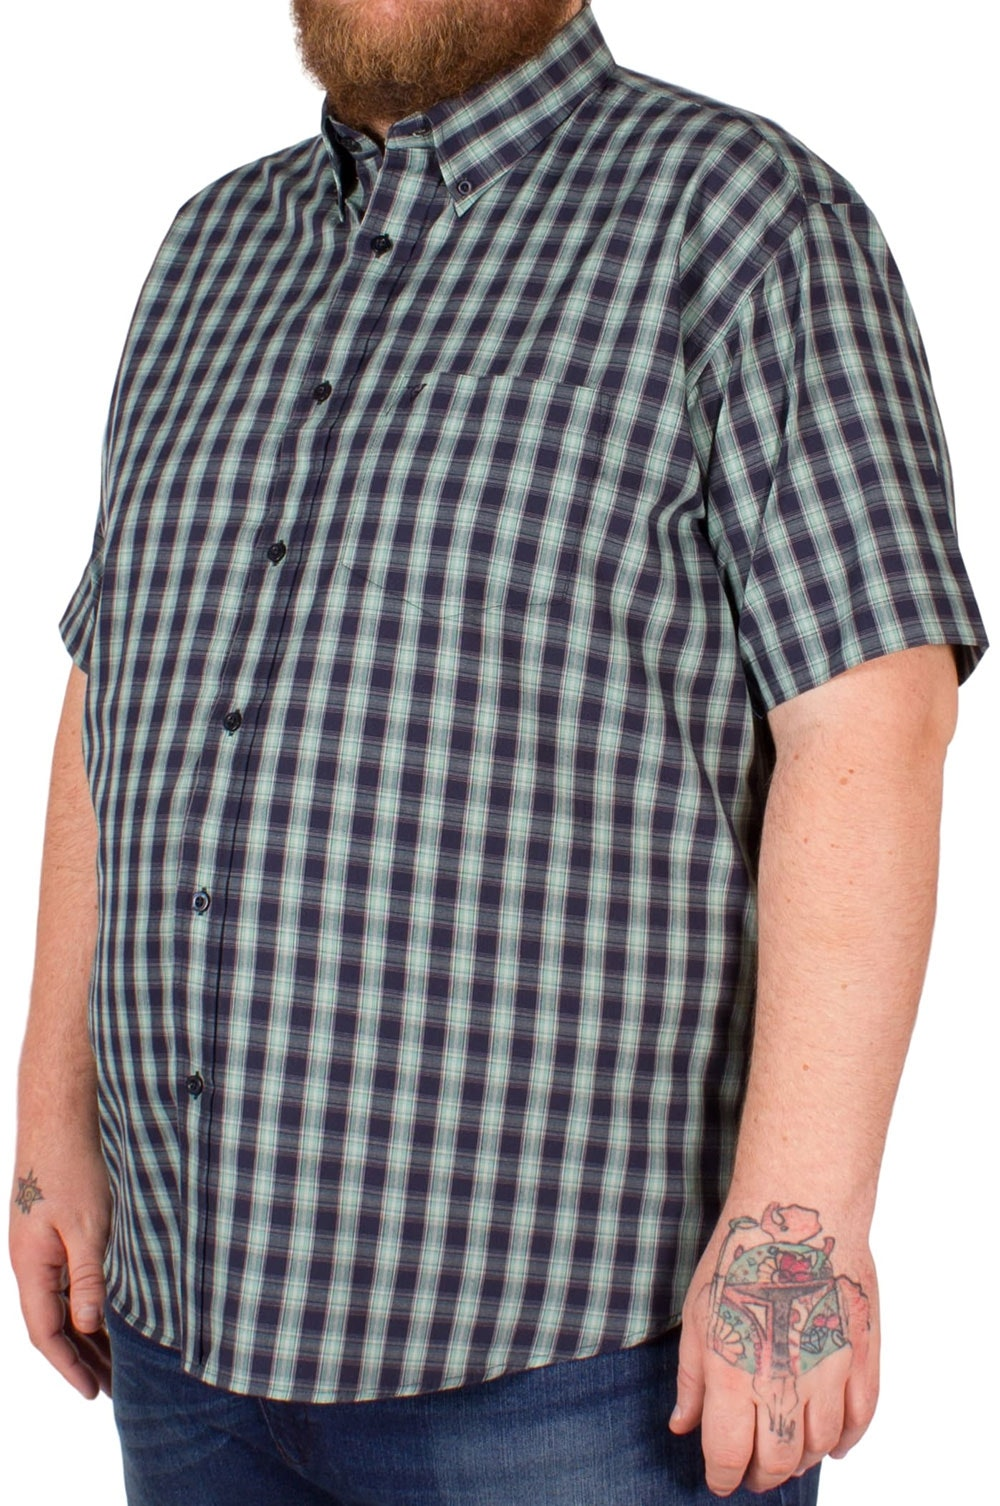 Cotton Valley Short Sleeve Navy/Grey Check Shirt